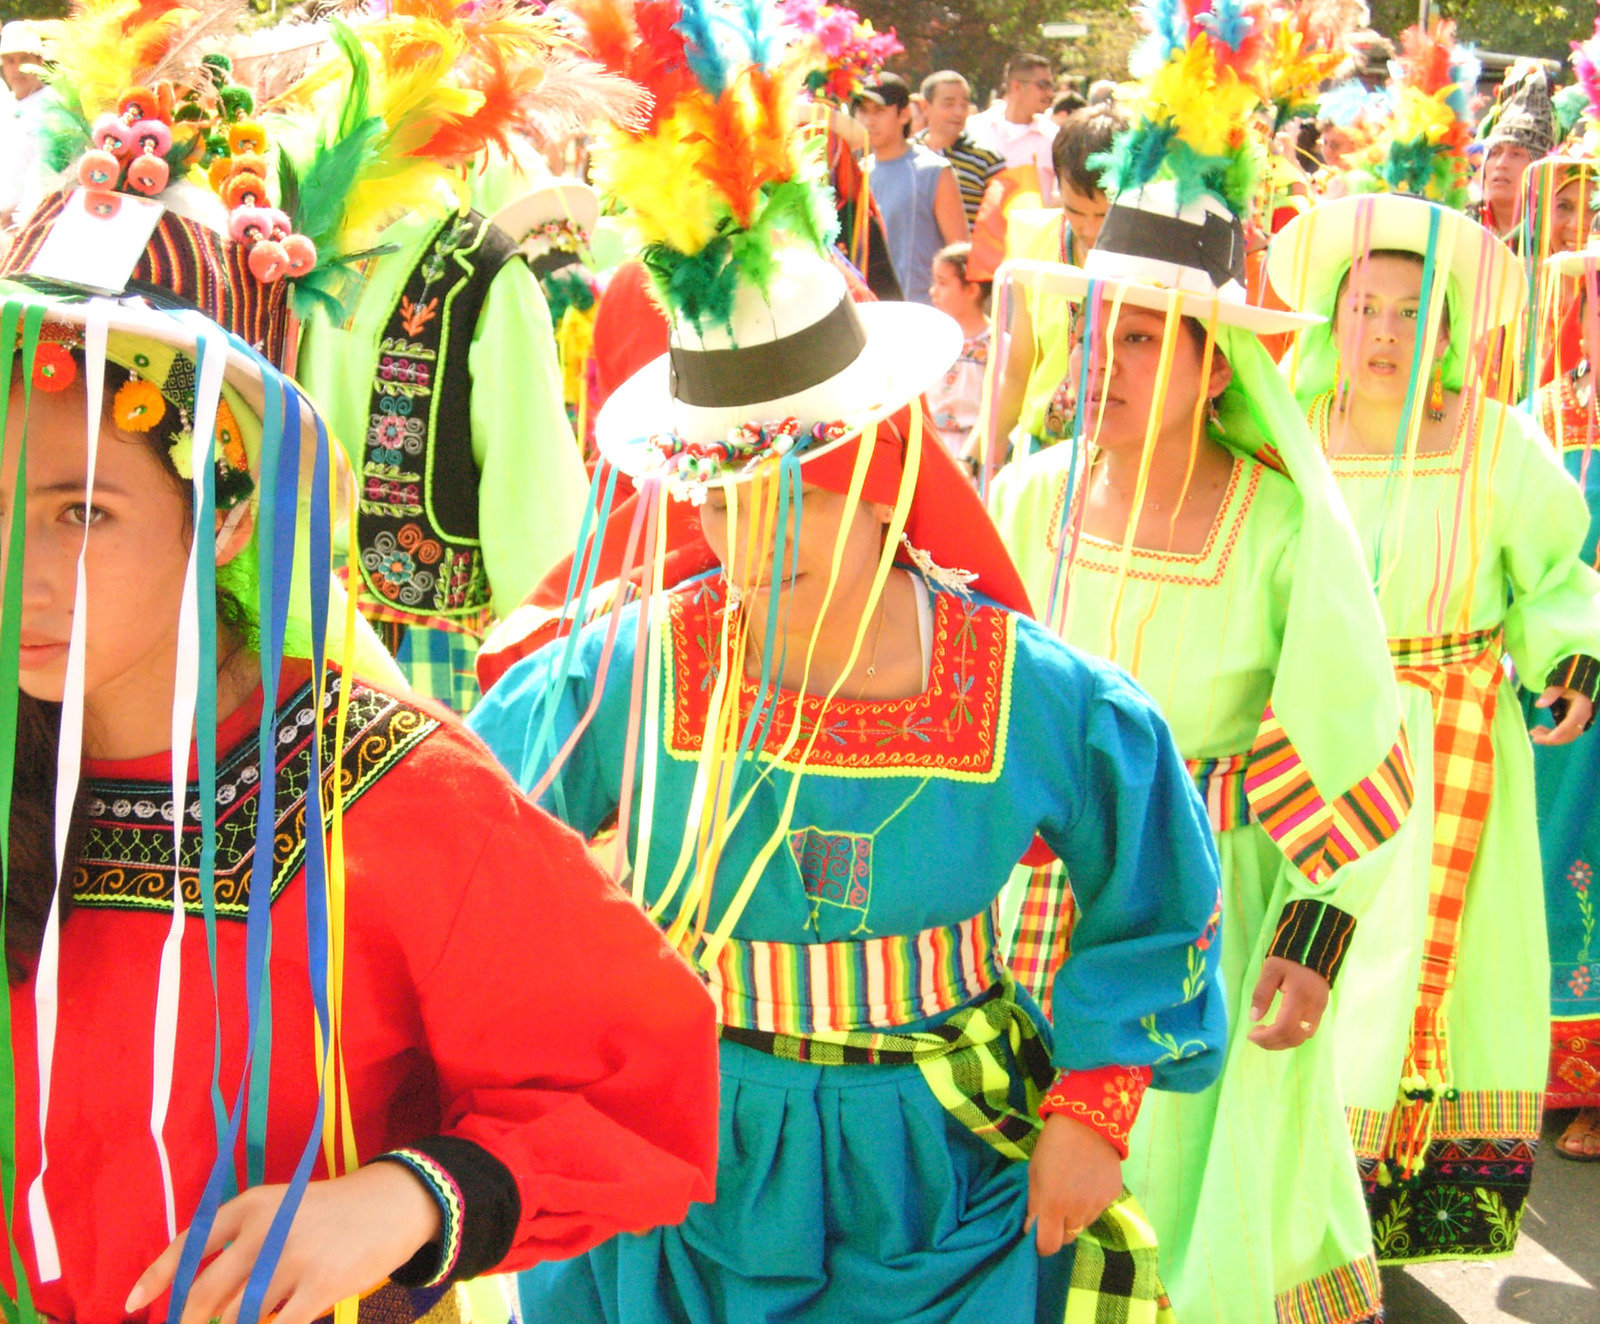 Carnaval del Pueblo in South London, 2006, acediscovery, Europeana Foundation, CC BY-SA